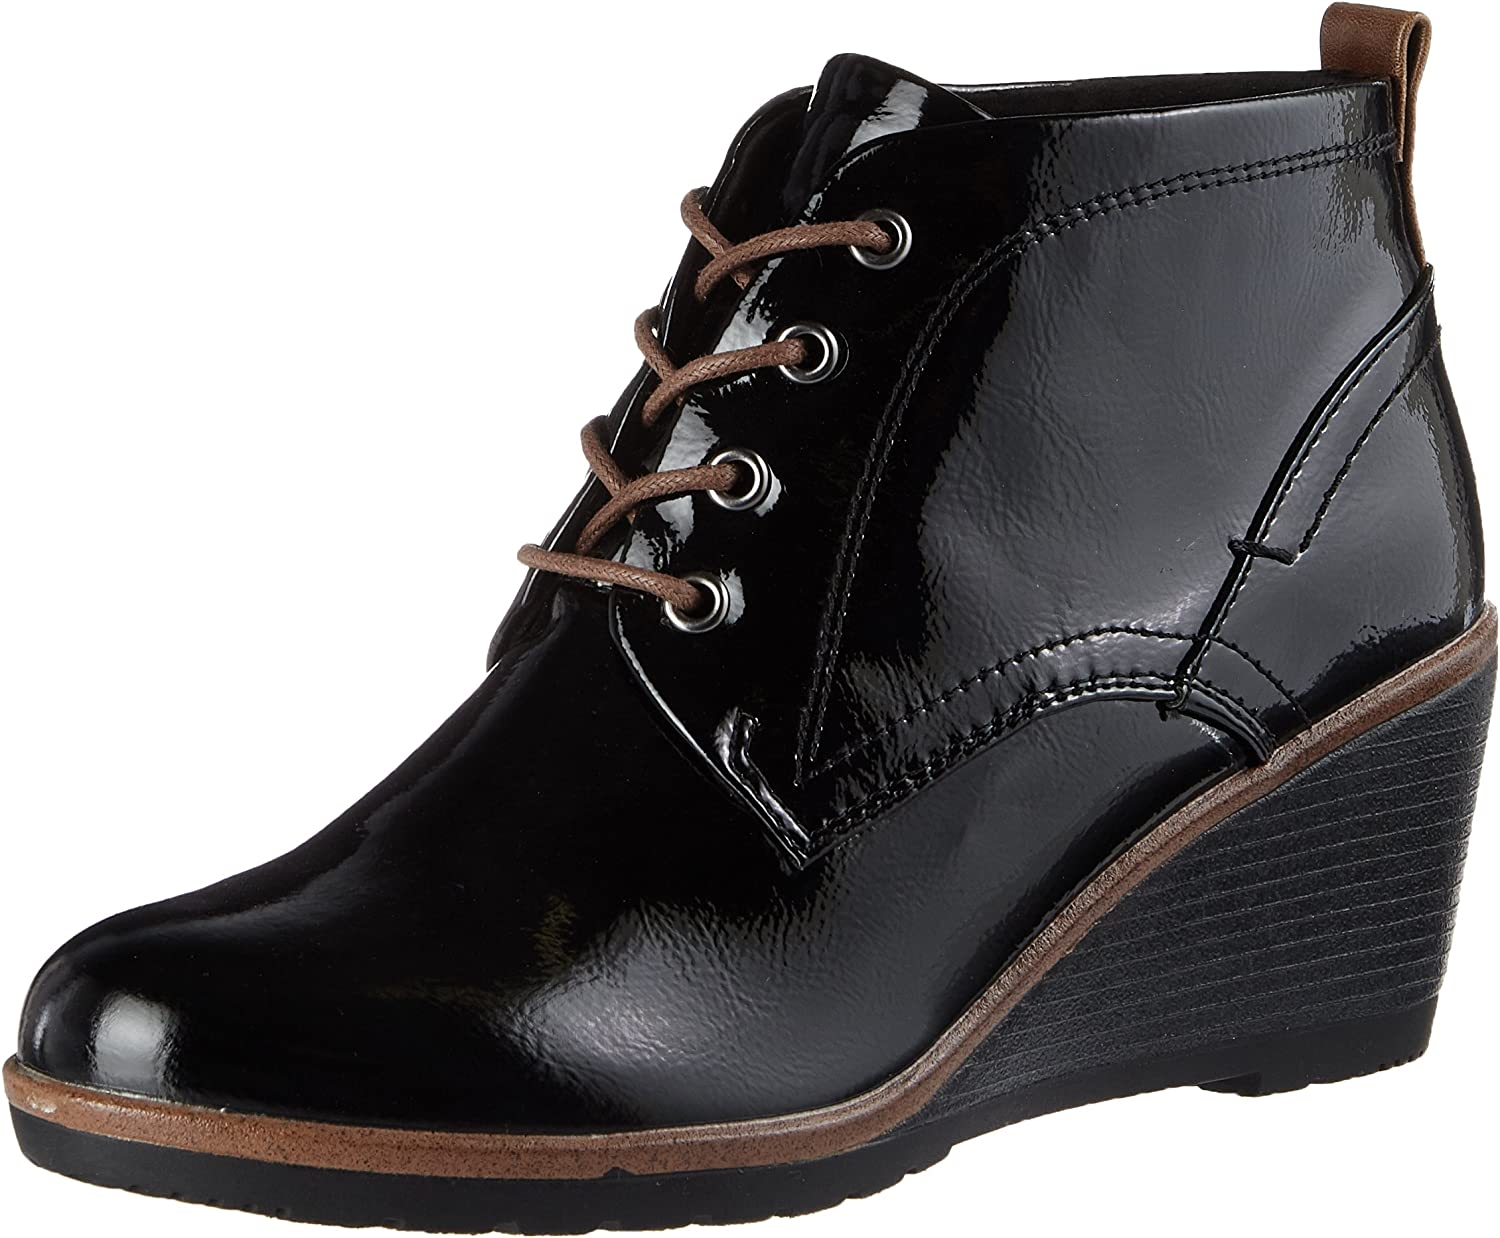 Marco Tozzi Women's Black Patent Lace Up Mid Heel Wedge Ankle Boot